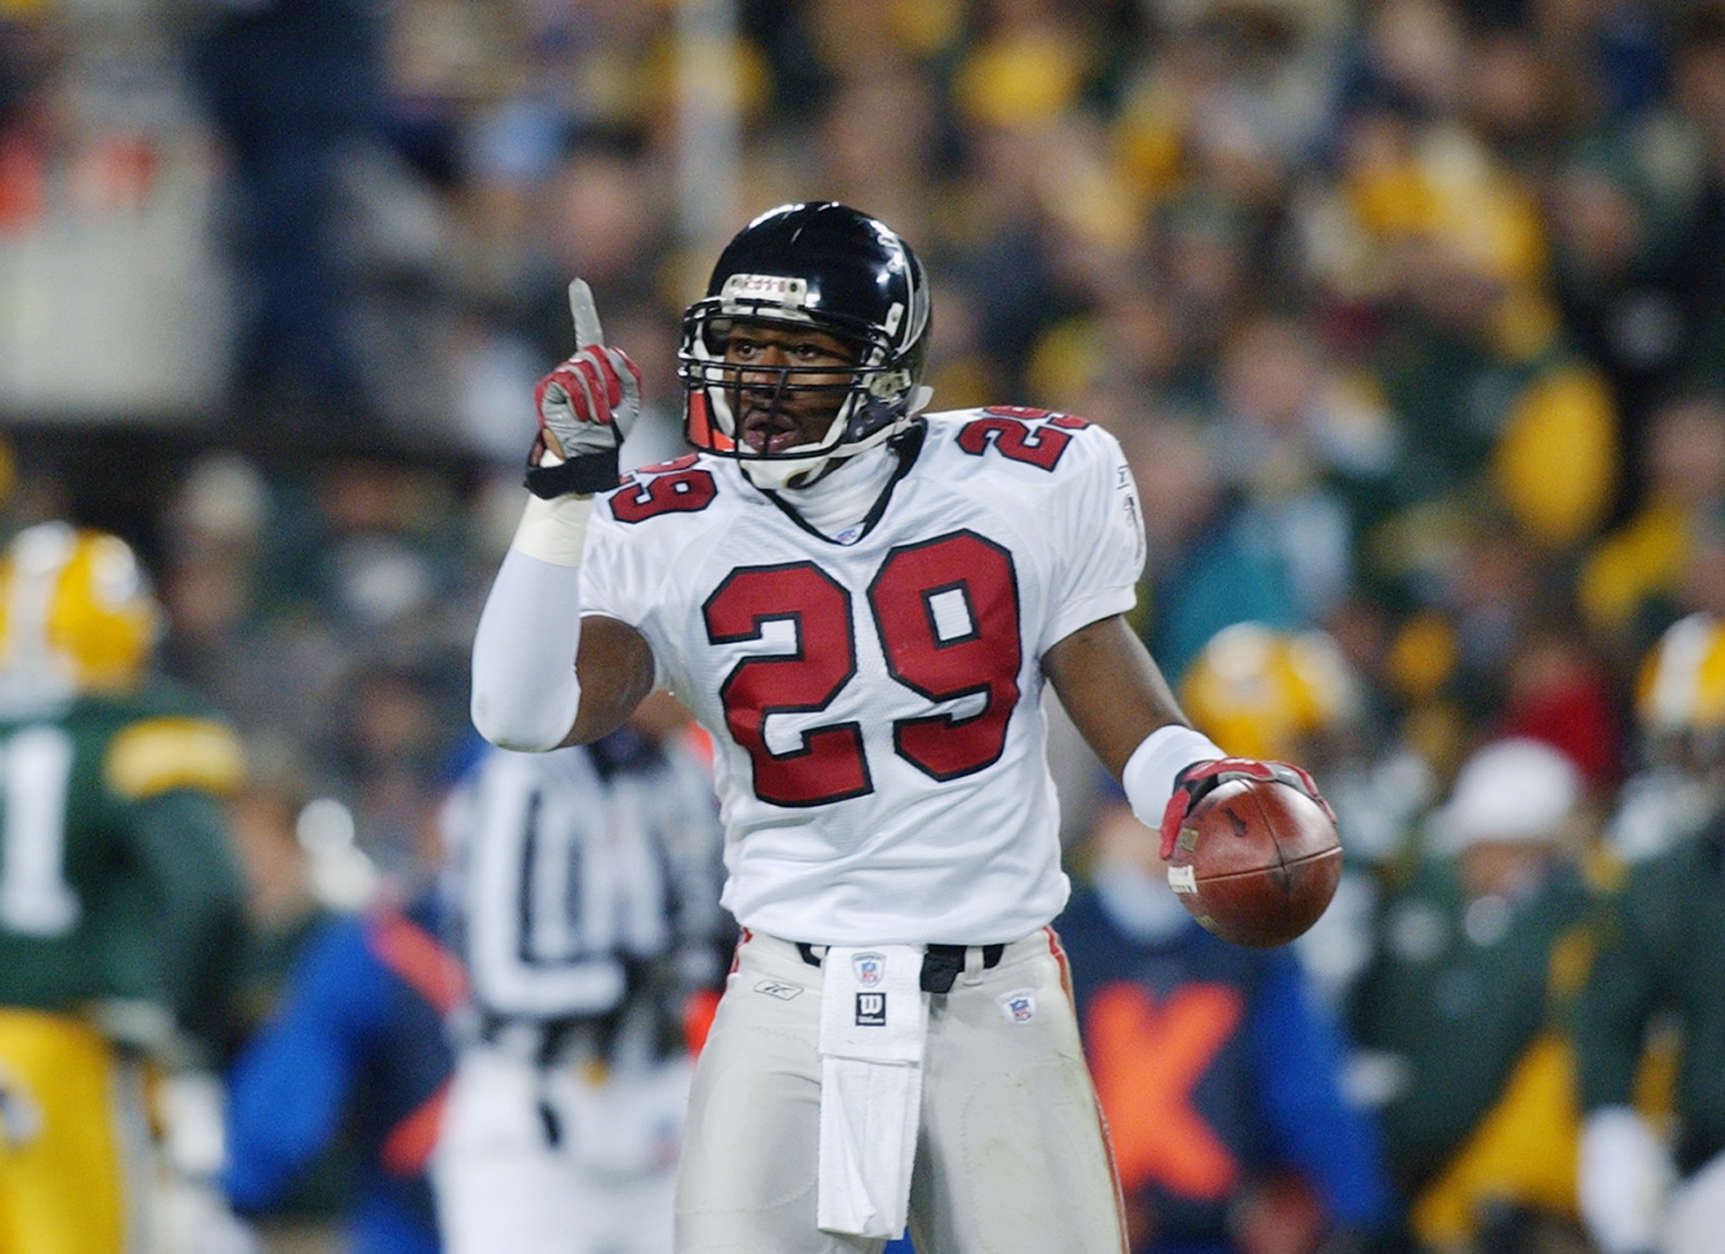 GREEN BAY, WI - JANUARY 4:  Keion Carpenter #29 of the Atlanta Falcons points to the sky as he celebrates after intercepting a pass against the Green Bay Packers at 8:33 of the first quarter of the NFC Wildcard game on January 4, 2002 at Lambeau Field in Green Bay, Wisconsin.  (Photo by Jonathan Daniel/Getty Images)